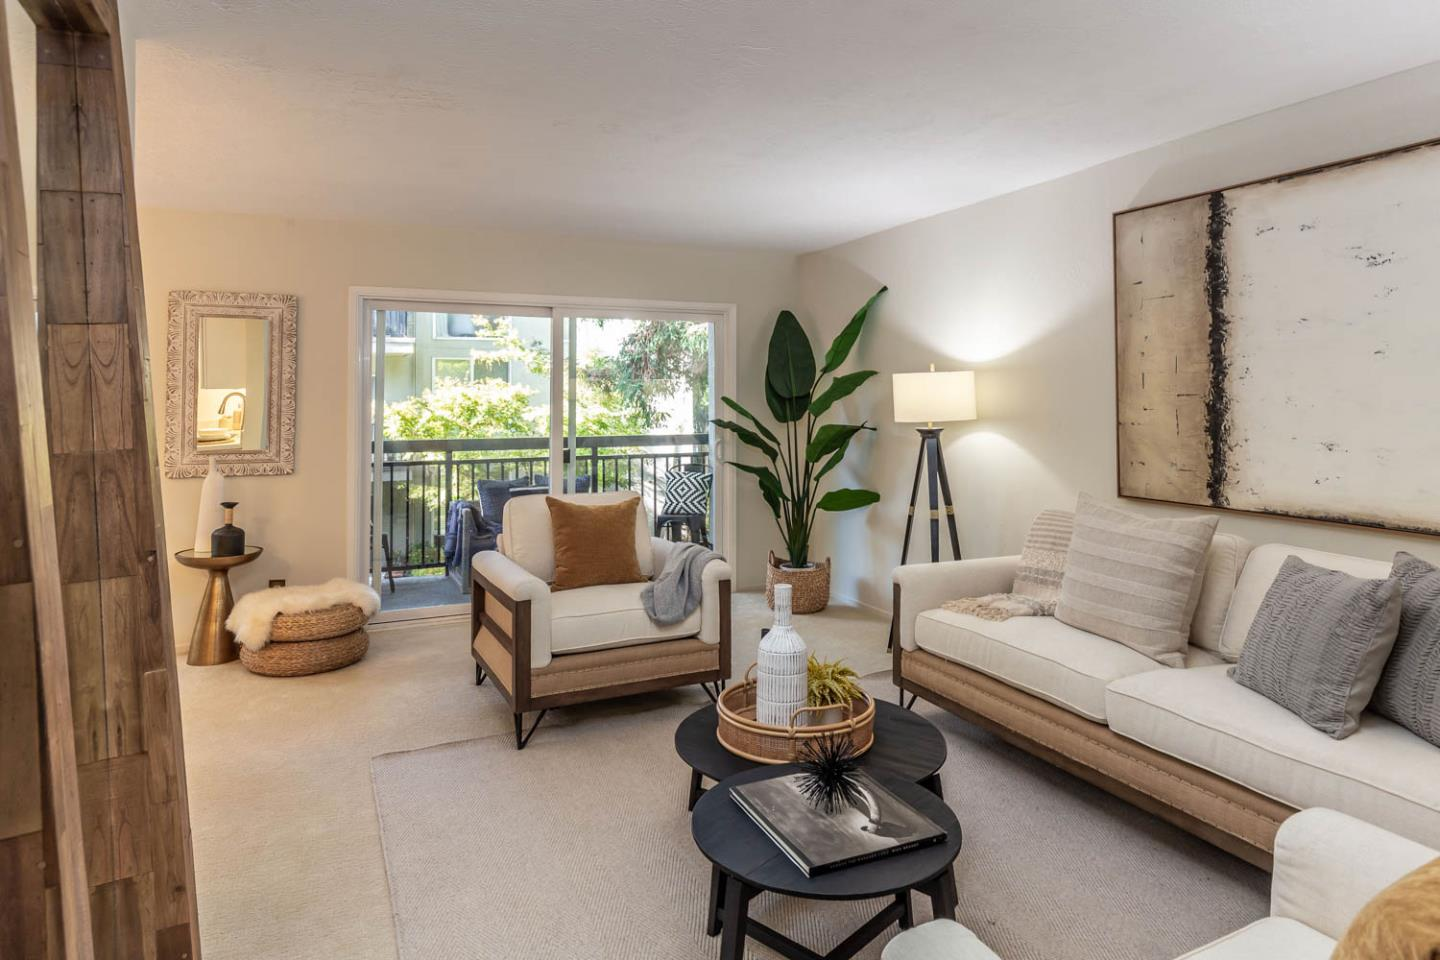 Located on the 2nd floor of a quiet, secure complex, this updated condo features spacious rooms, a large balcony, and floor-to-ceiling windows framing views of the lush, park-like interior courtyard and pool. The living room offers ample space to host gatherings, and opens to a large balcony. The dining room sits beneath a drum chandelier and features a wall of windows. The updated kitchen presents crisp Shaker-style cabinetry, new stainless steel appliances, and quartz countertops. The first bedroom has a well-sized closet with mirrored doors and a floor-to-ceiling window with courtyard views. The primary bedroom is privately located with no neighbors directly next door, and has a floor-to-ceiling window with gorgeous views of a Japanese maple. The designer bathroom features porcelain tile floors, a quartz-topped vanity, and a deep soaking tub and shower. A home in the lovely Stanford Gate community with access to Los Altos schools and close to The Village at San Antonio Center.